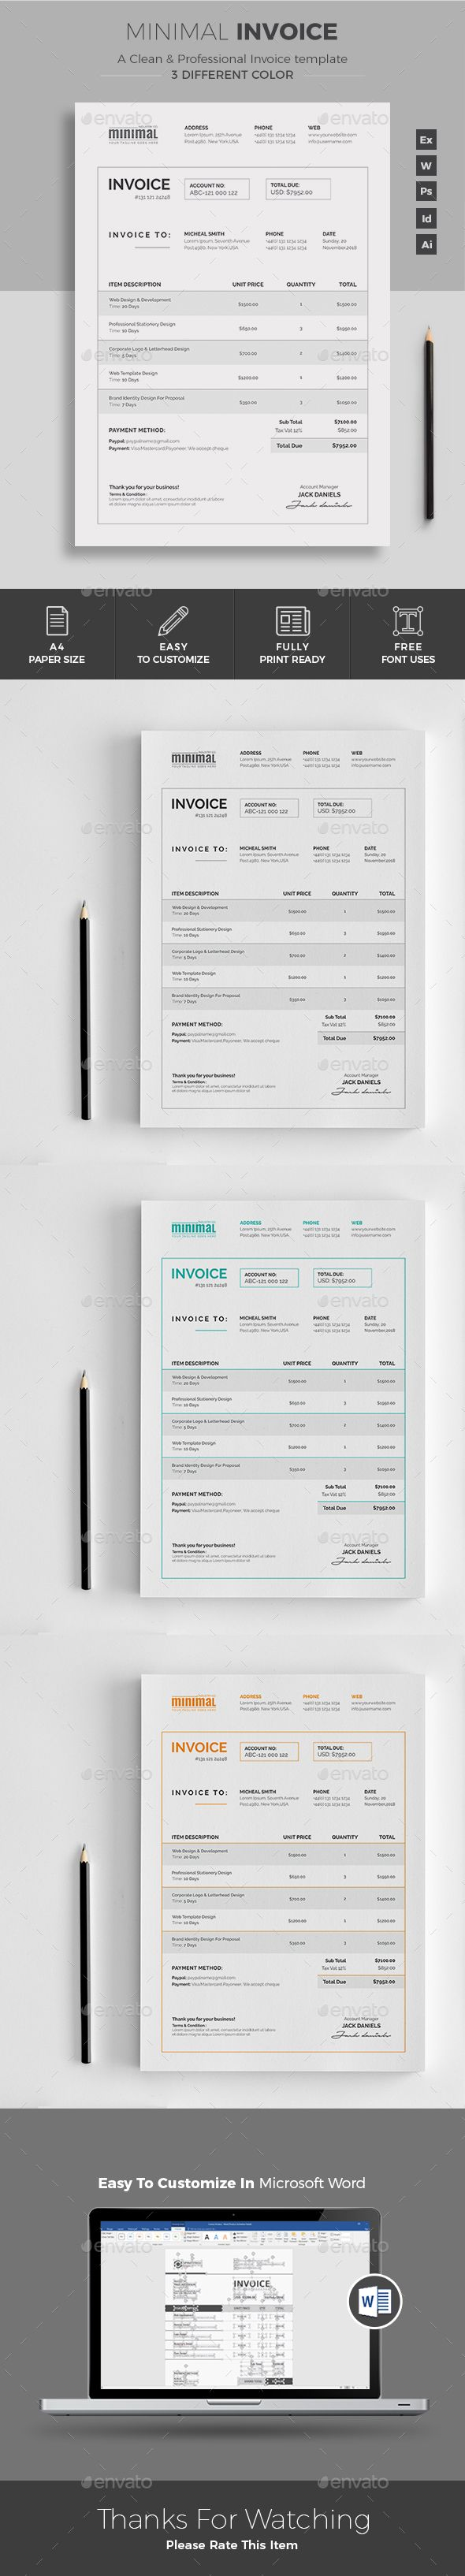 Ms Word Proposal Template Invoice  Pinterest  Template Ai Illustrator And Proposal Templates